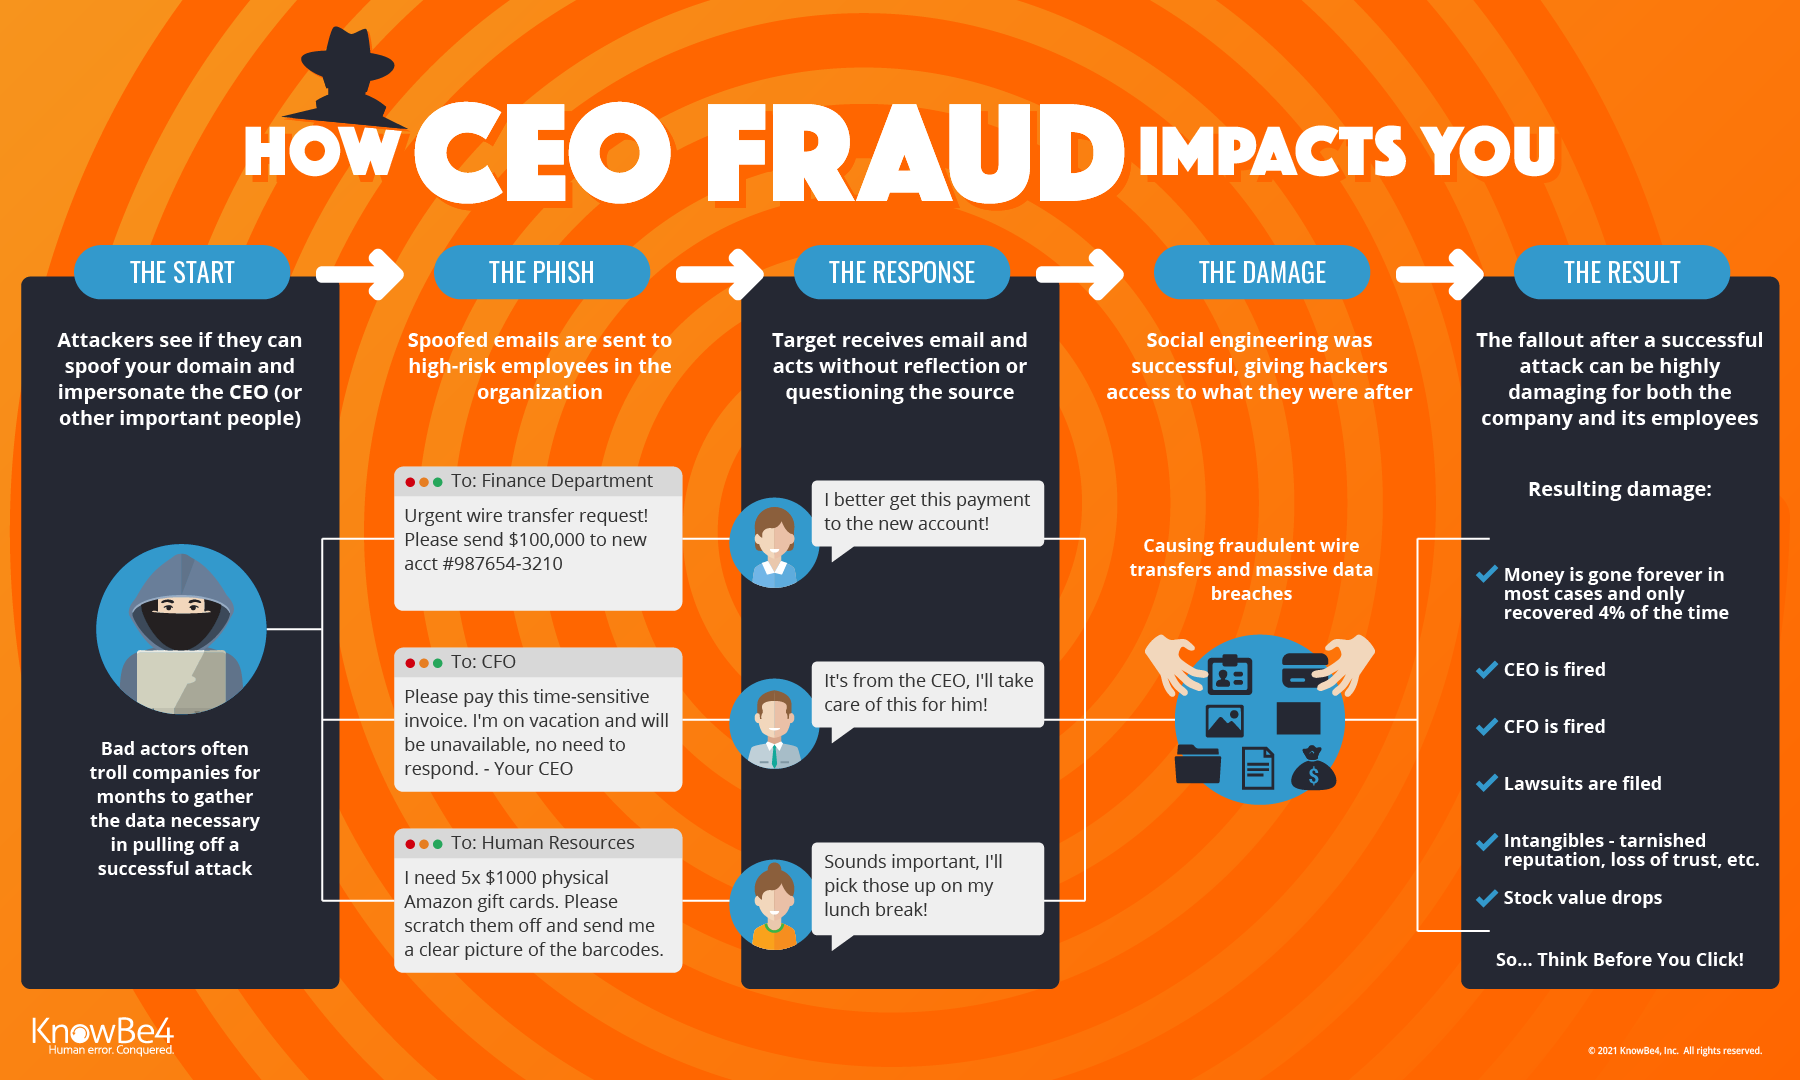 Why You Should Be Afraid of CEO Fraud [INFOGRAPHIC]